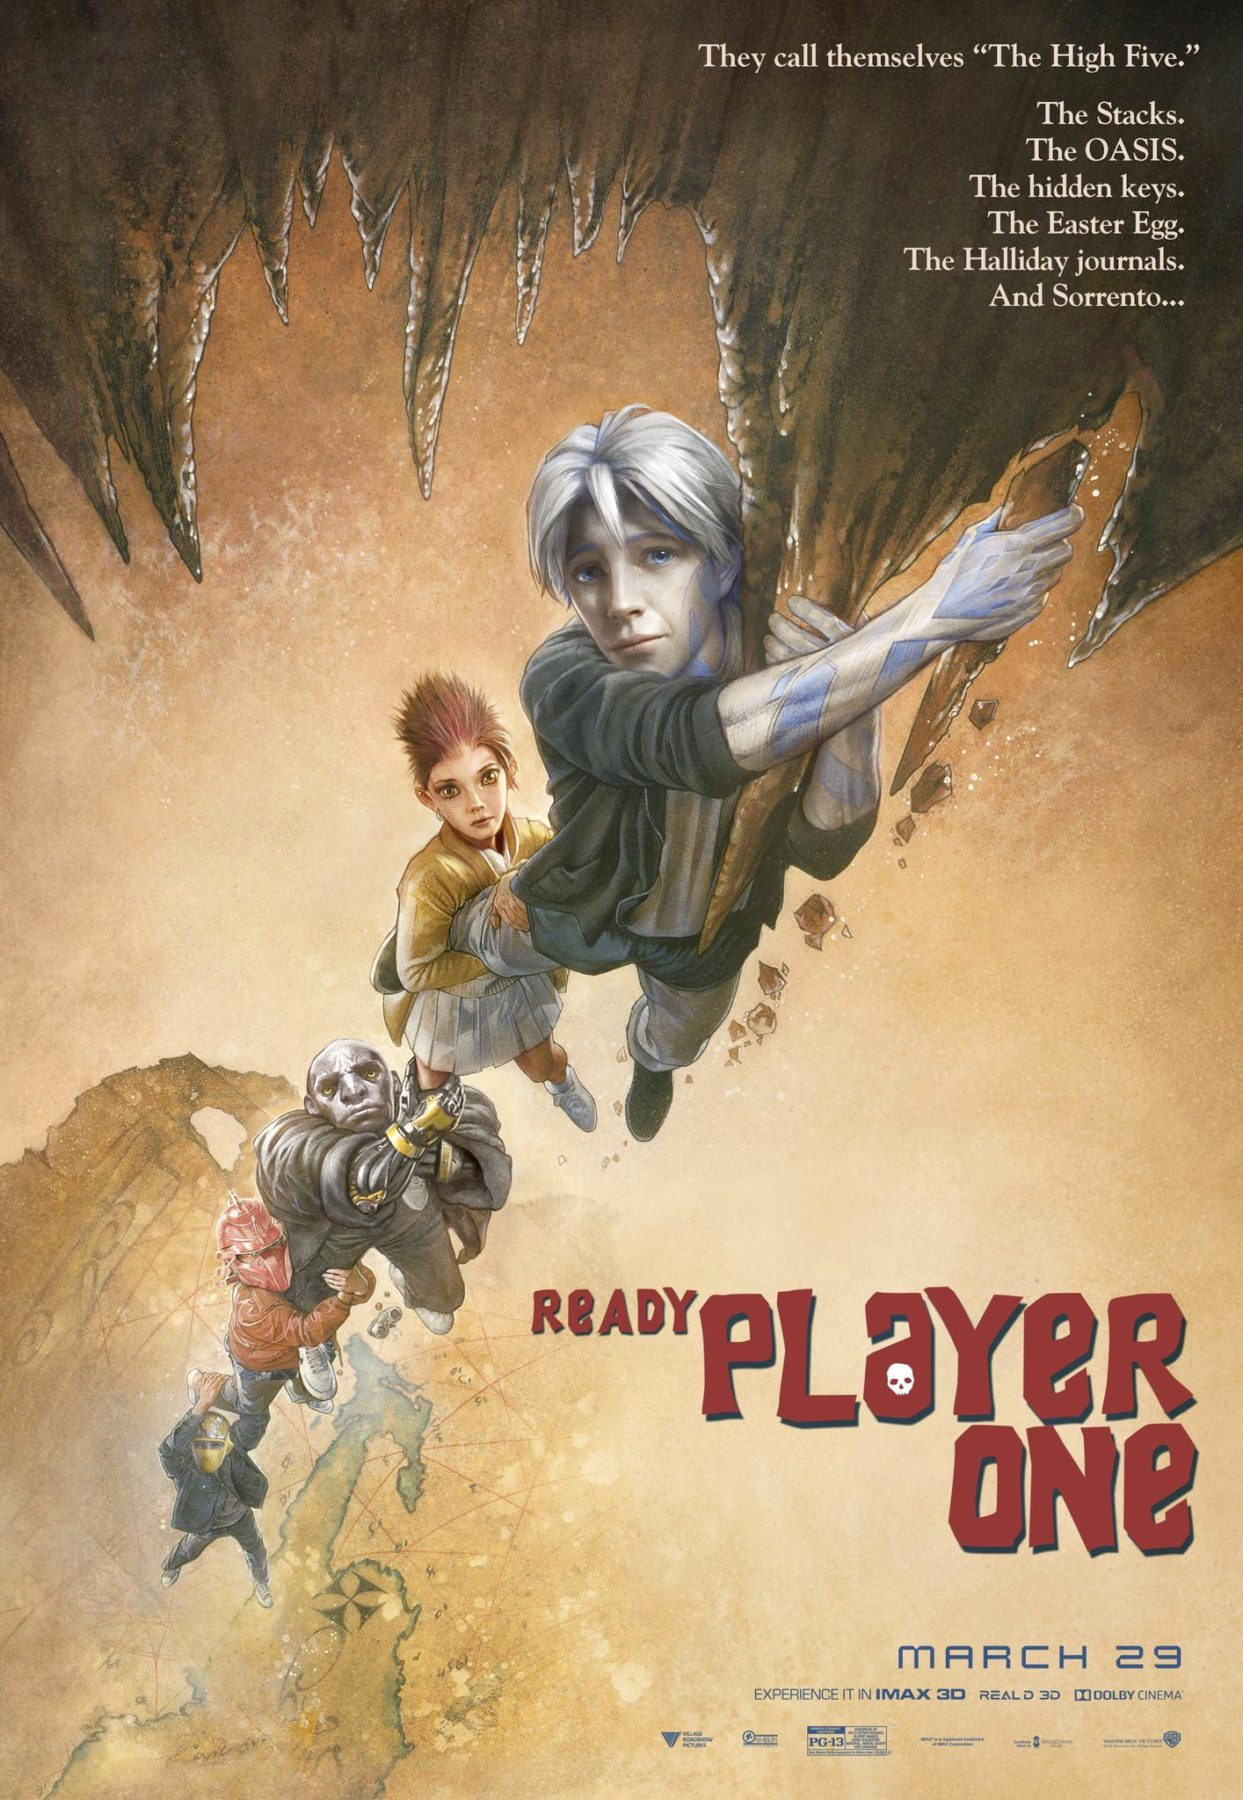 Ready Player One Pays Homage To Classic Movie Posters Flickering Myth